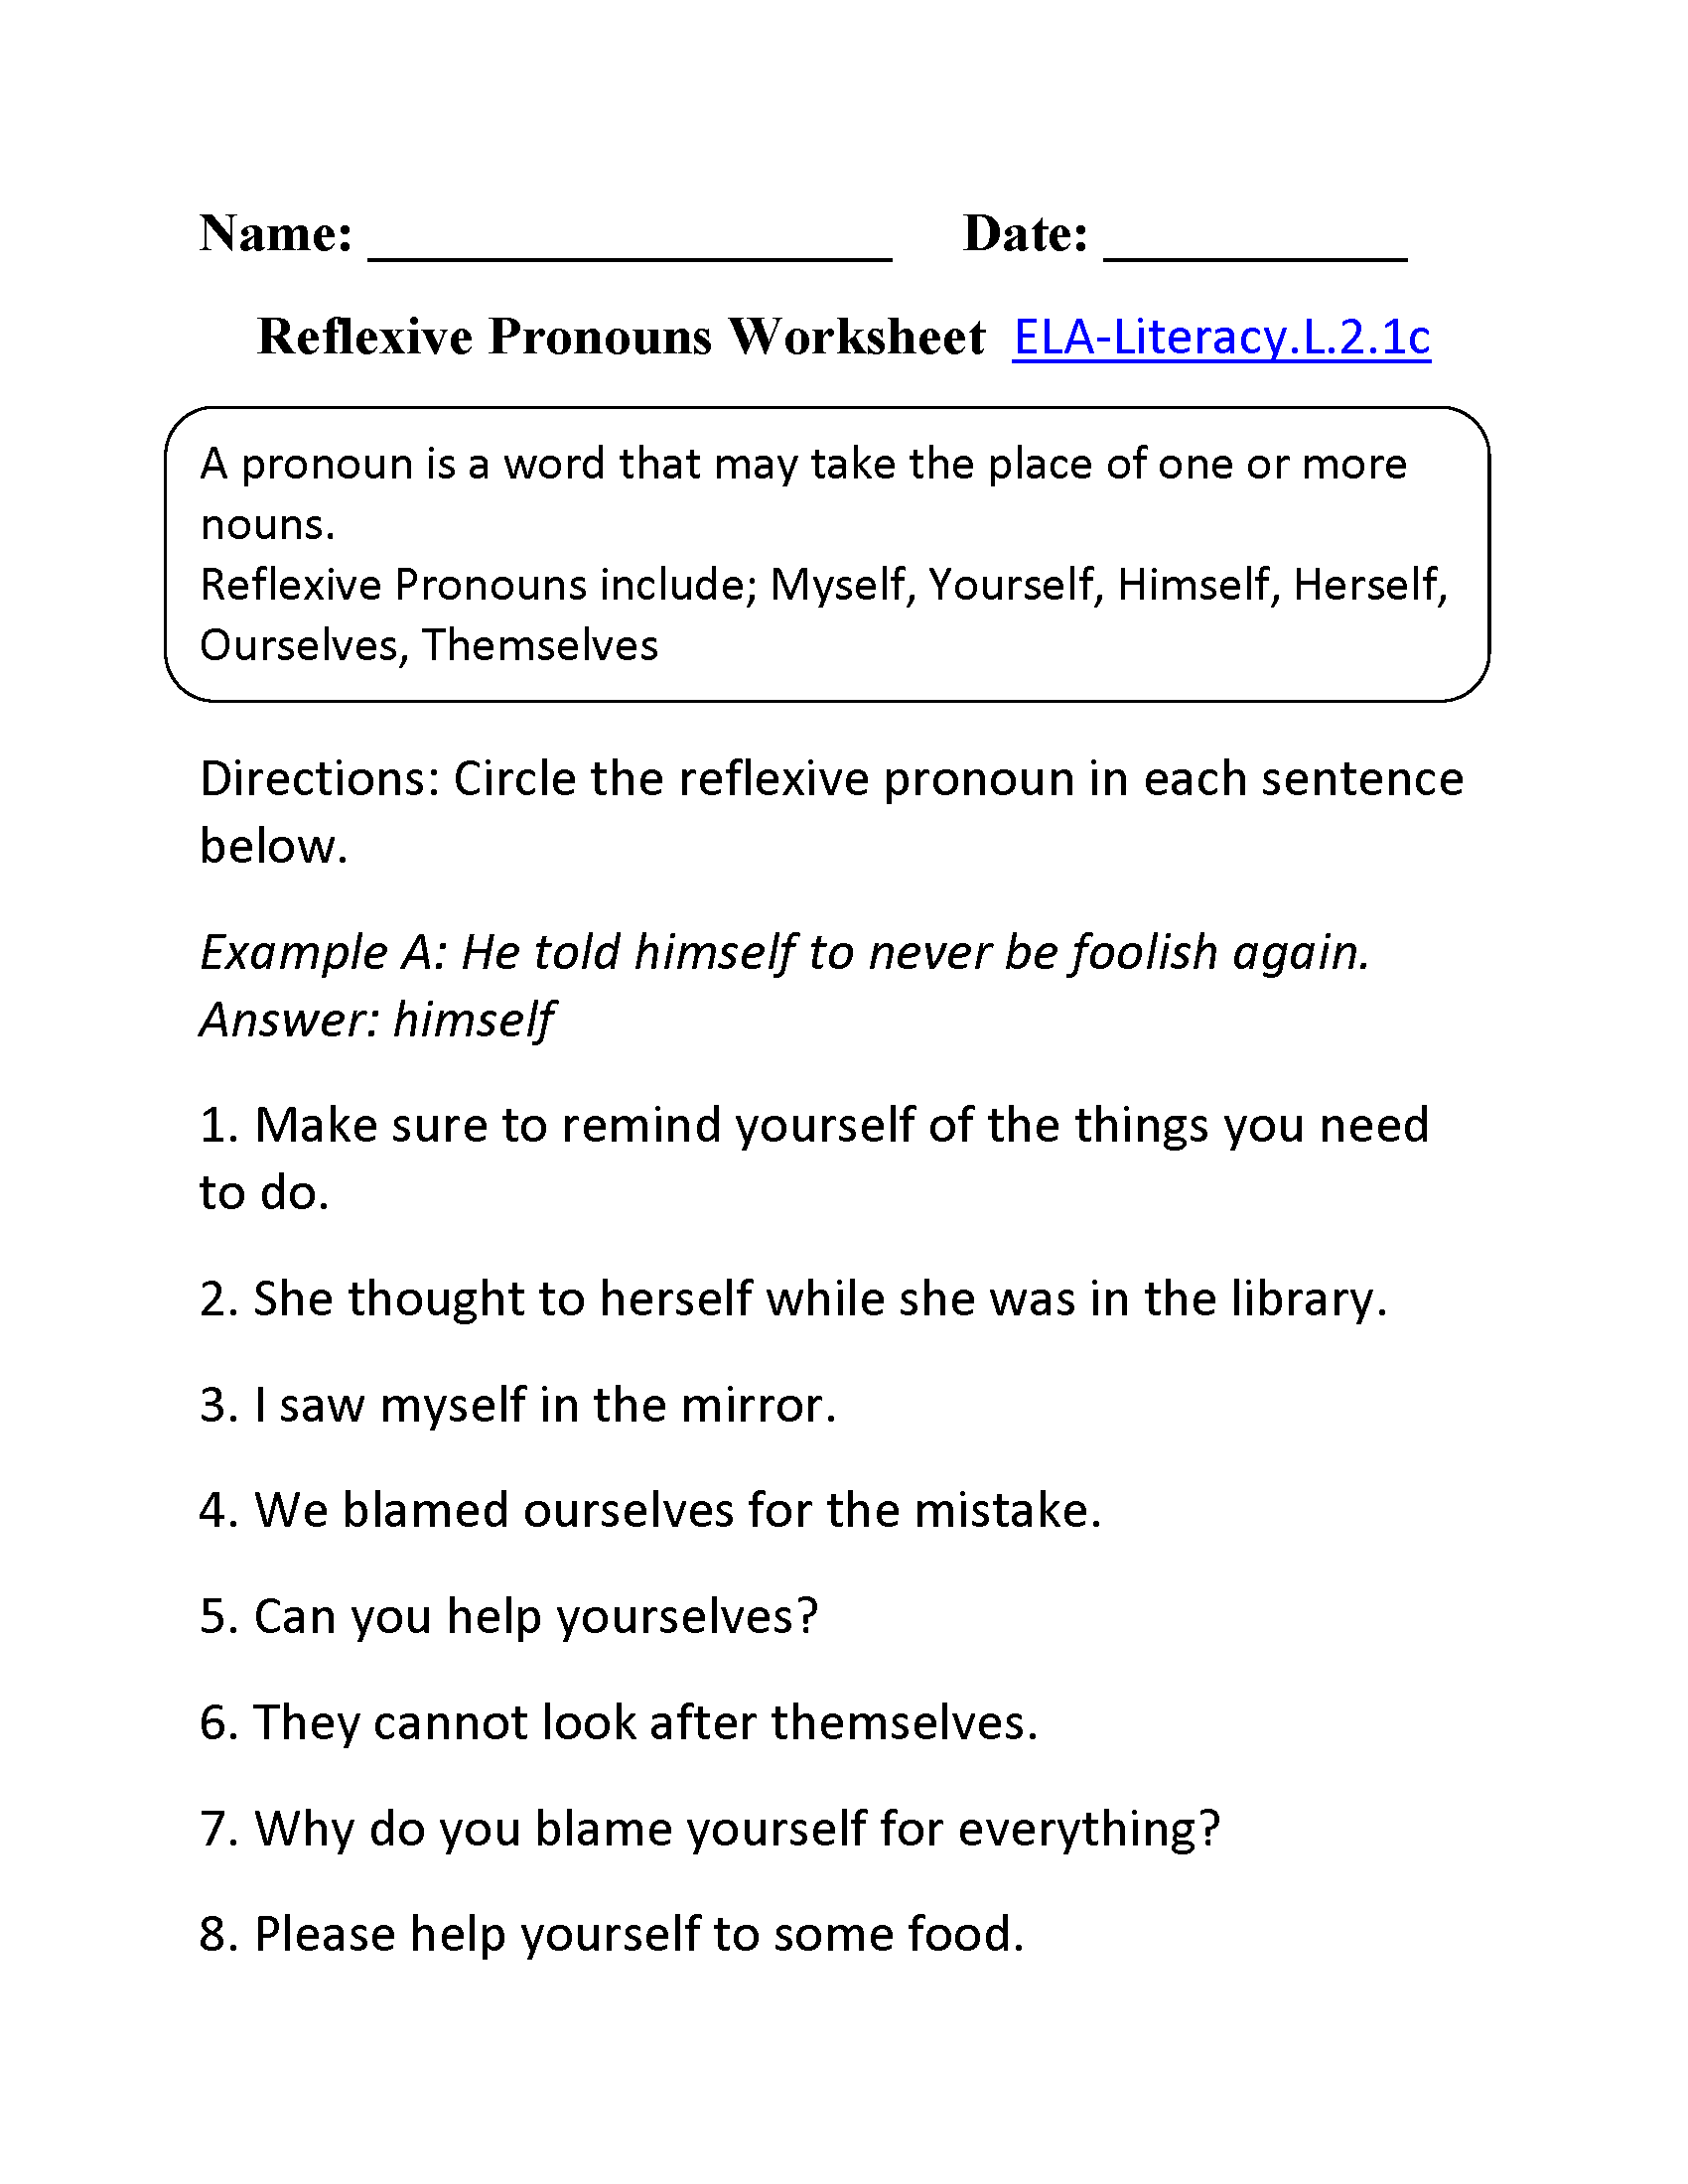 Worksheets Reflexive Pronouns Worksheets 2nd grade common core language worksheets reflexive pronouns worksheet 1 ela literacy l 2 1c worksheet